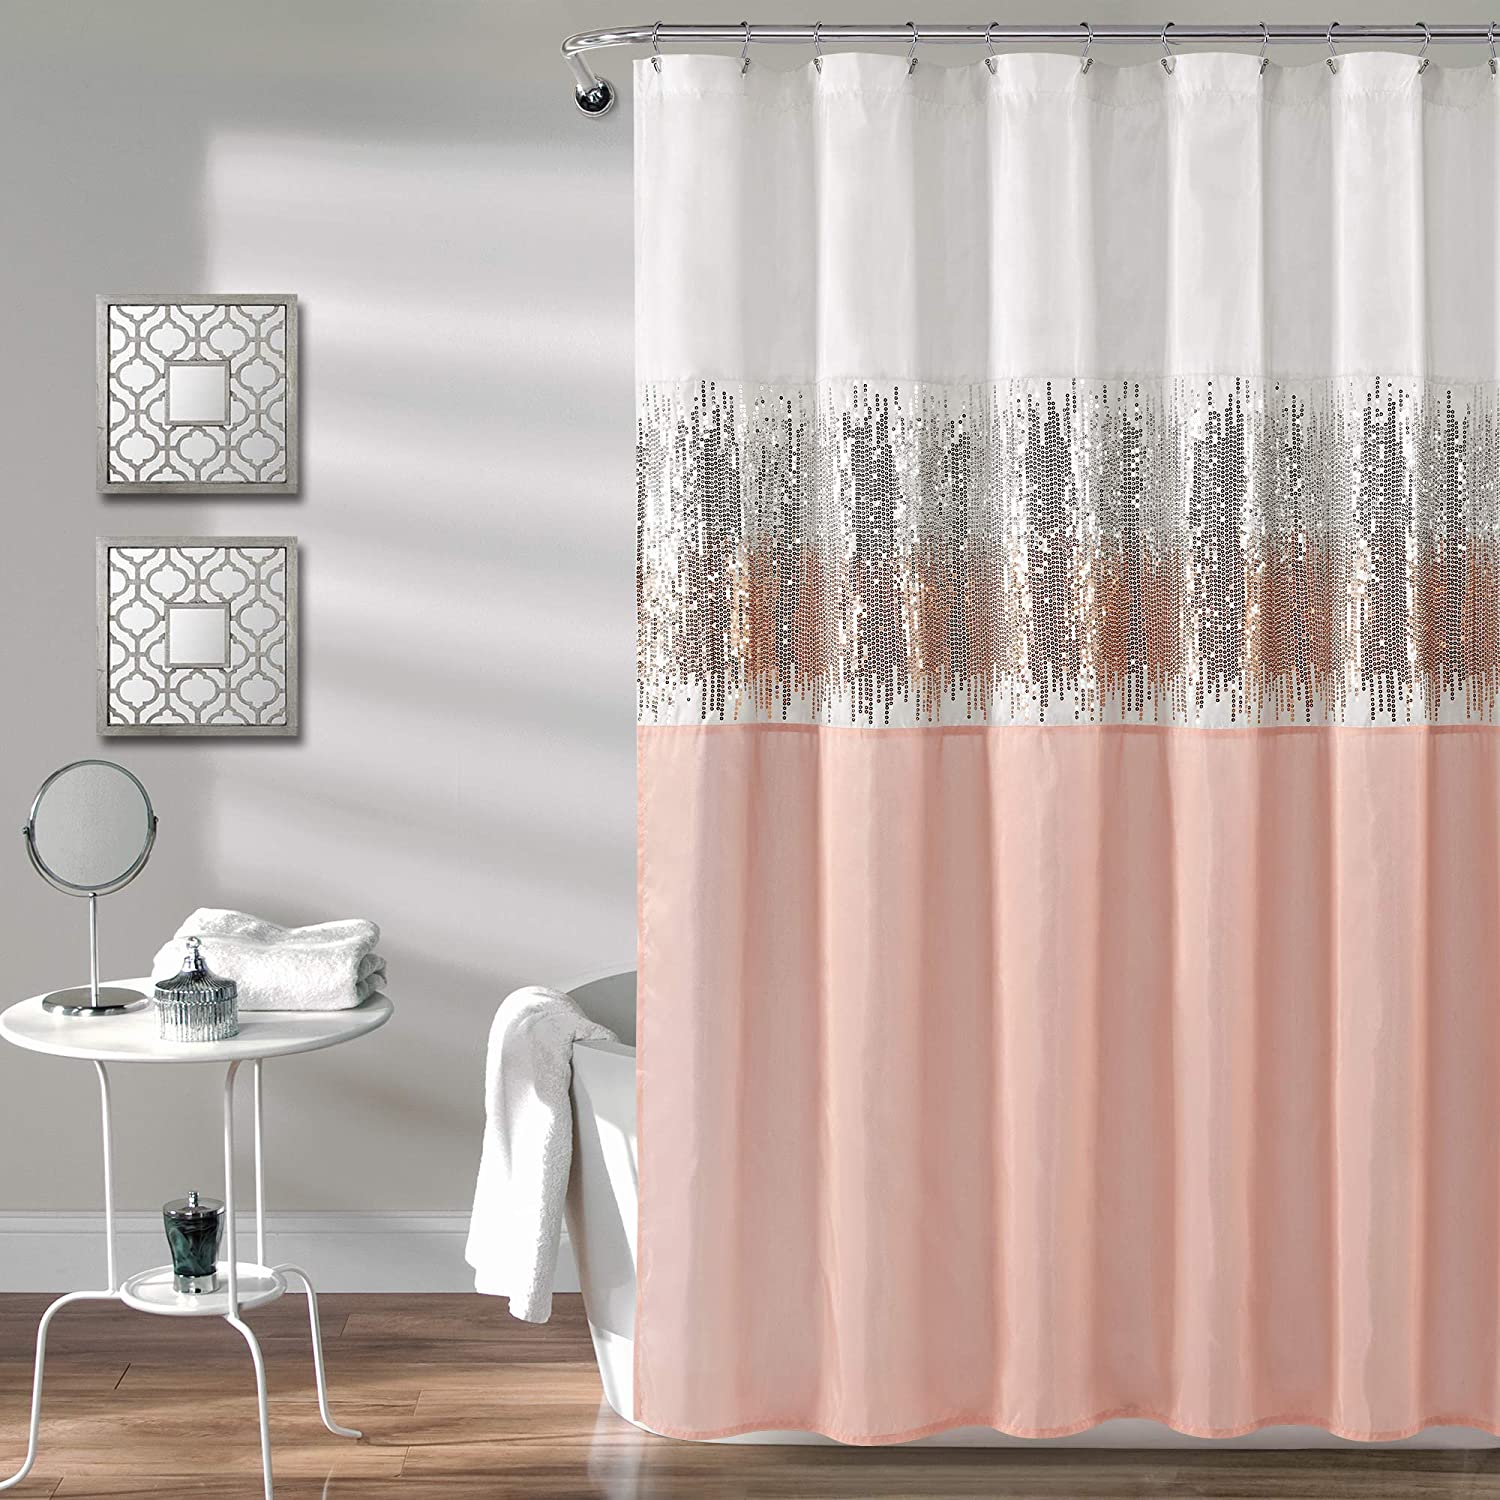 Lush Decor, White and Blush Night Sky Shower Curtain | Sequin Fabric Shimmery Color Block Design for Bathroom, x 72